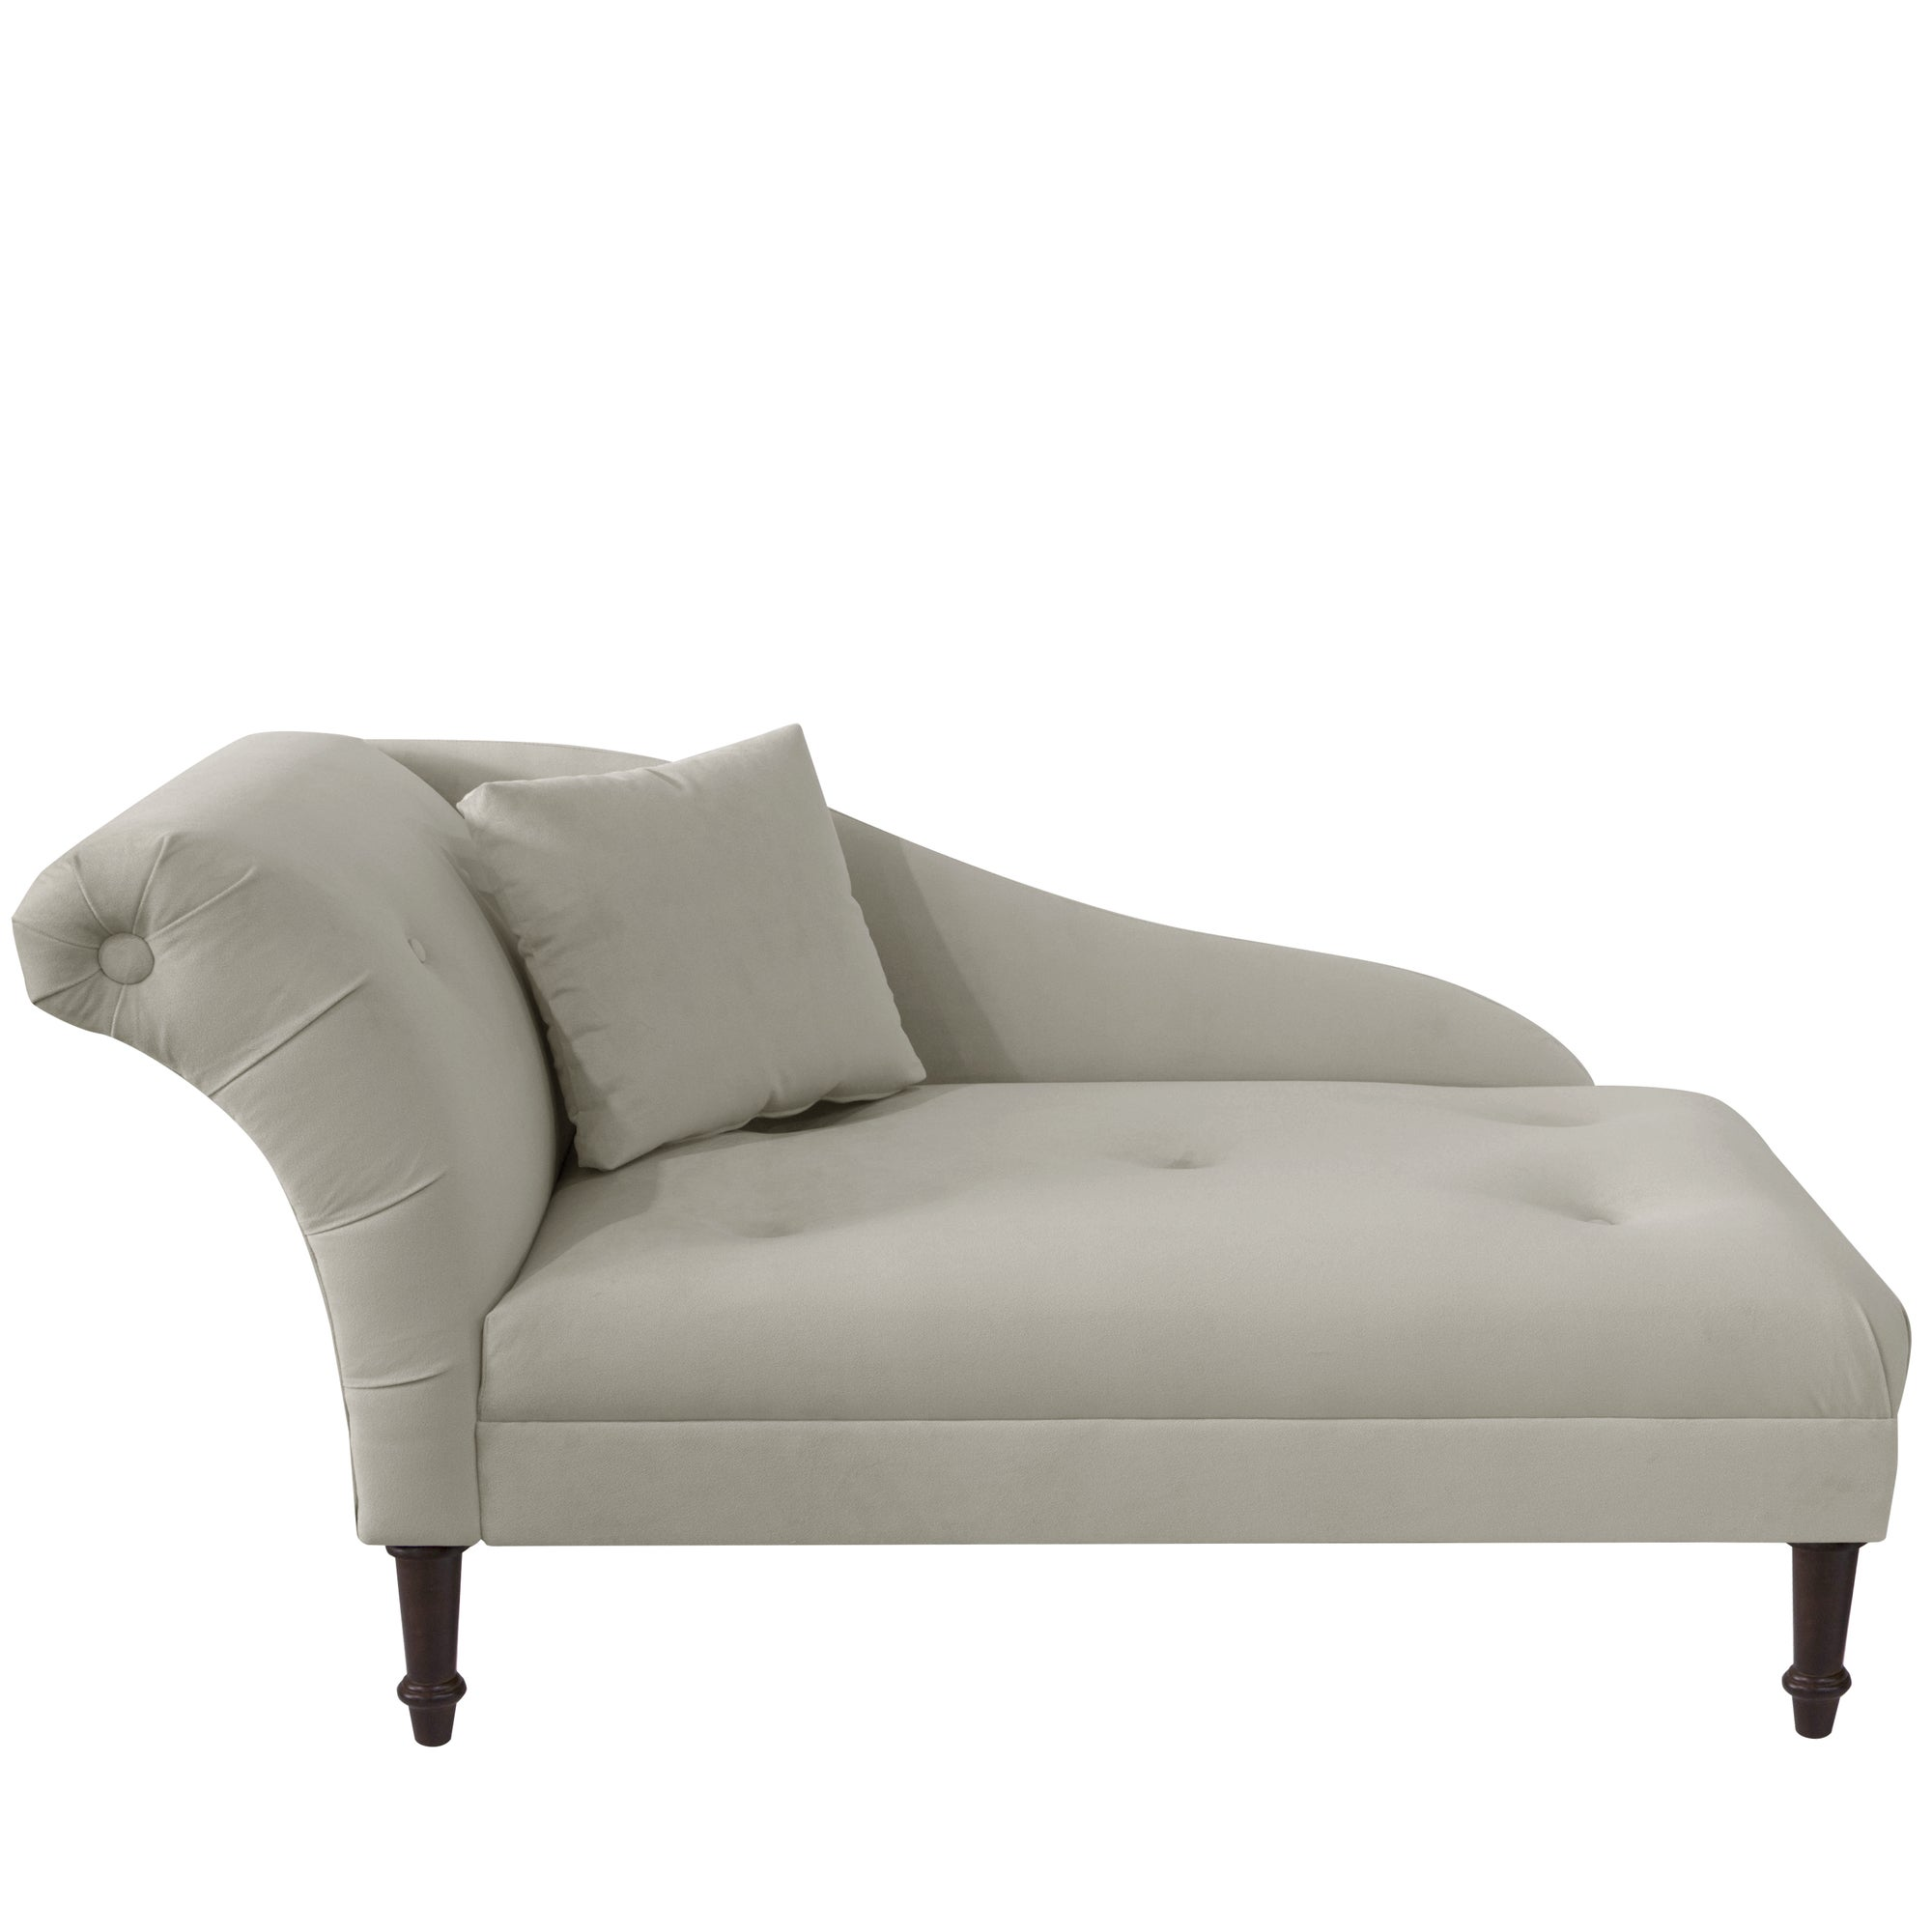 decor trim chaise home nailhead your tufted furniture pretty gold belleze with throughout chair for skyline lounge couch